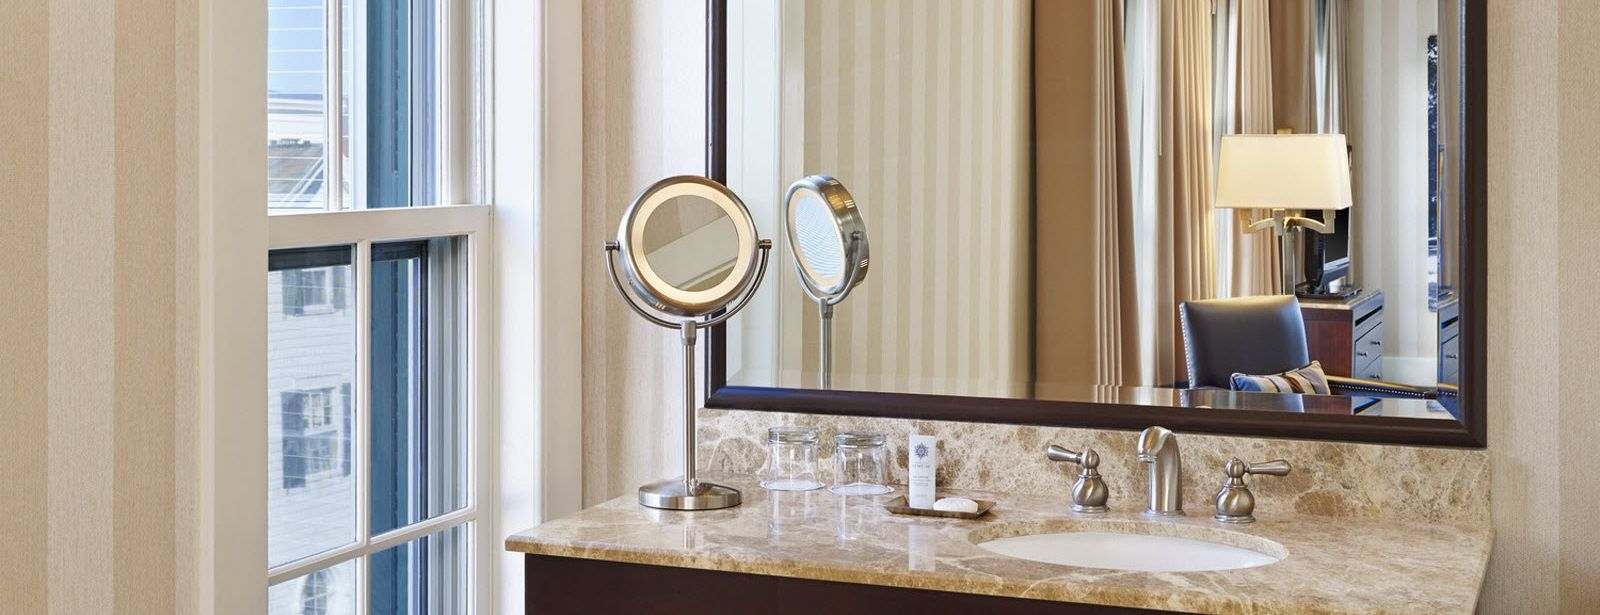 The Equinox, a Luxury Collection Golf Resort & Spa, Vermont Deluxe One Bedroom Suite bathroom